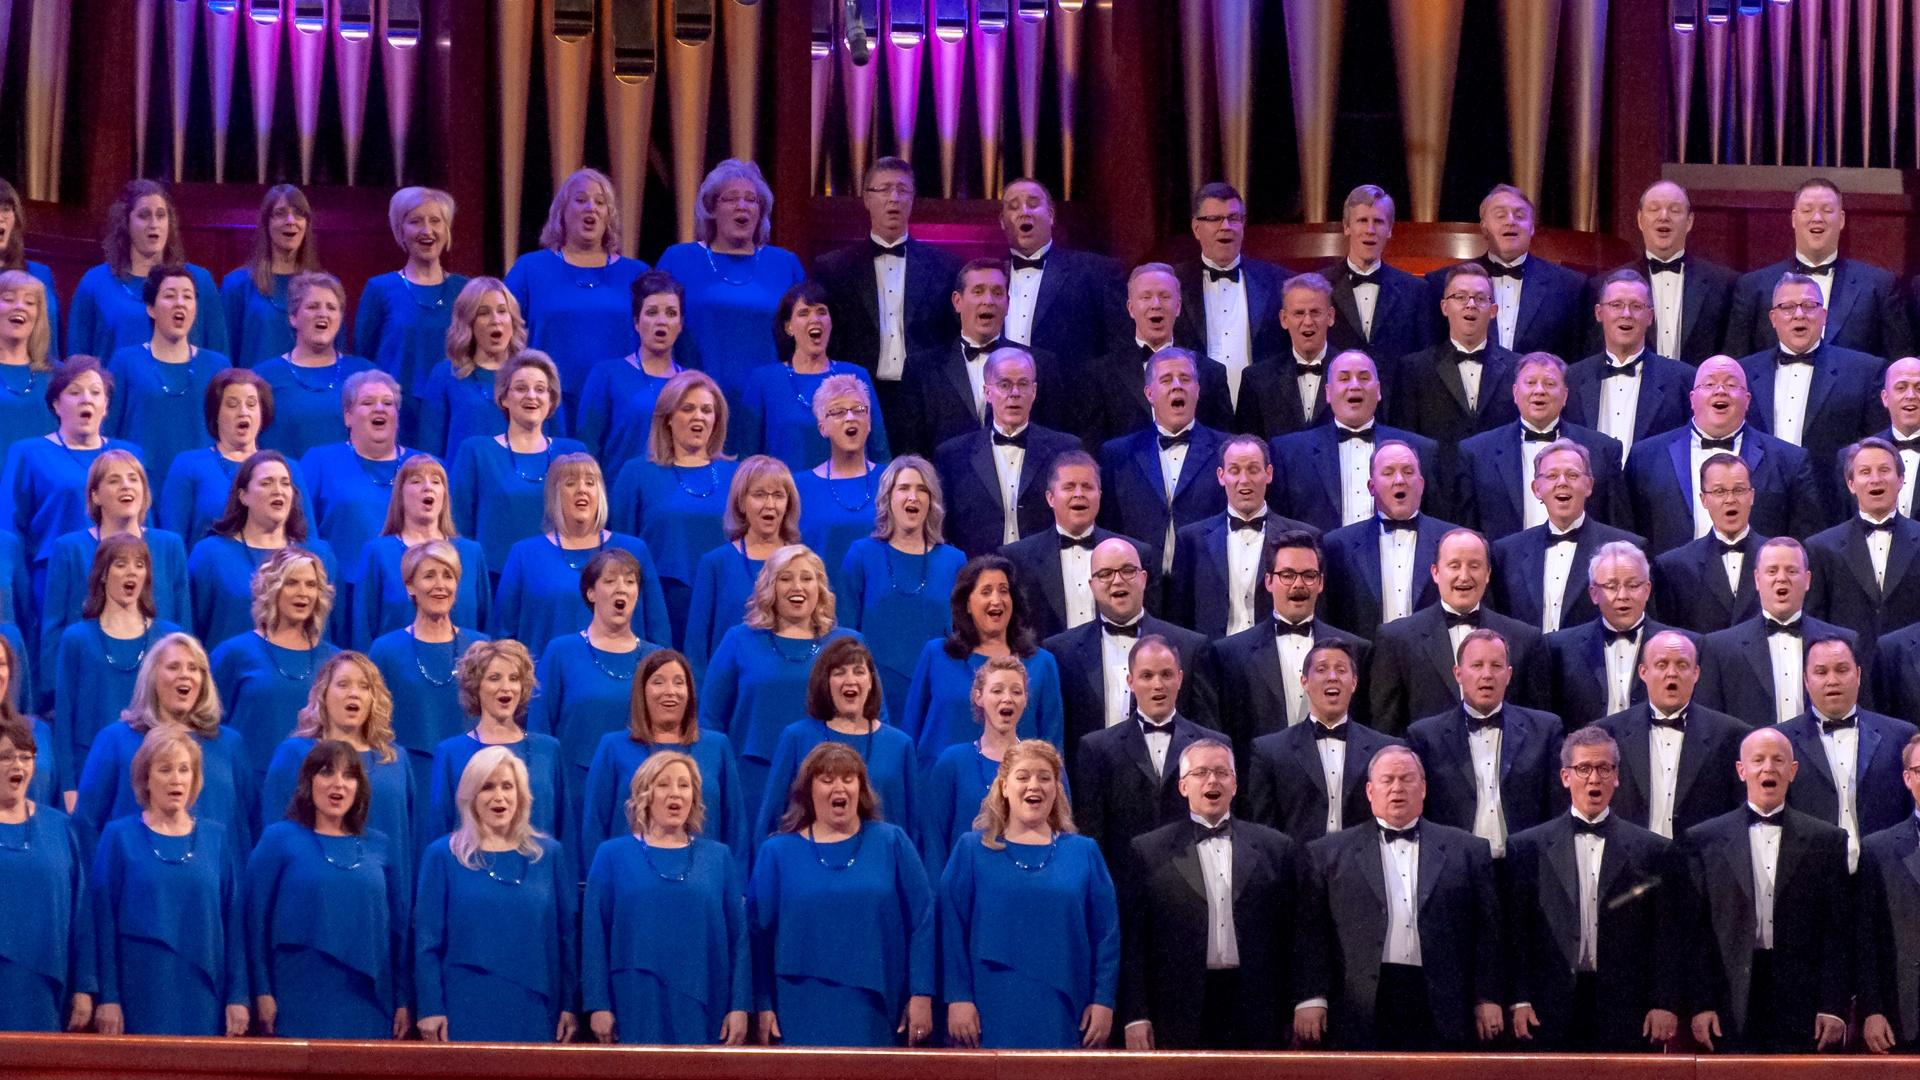 Female members of The Tabernacle Choir singing with Christmas decorations and a pipe organ behind them.